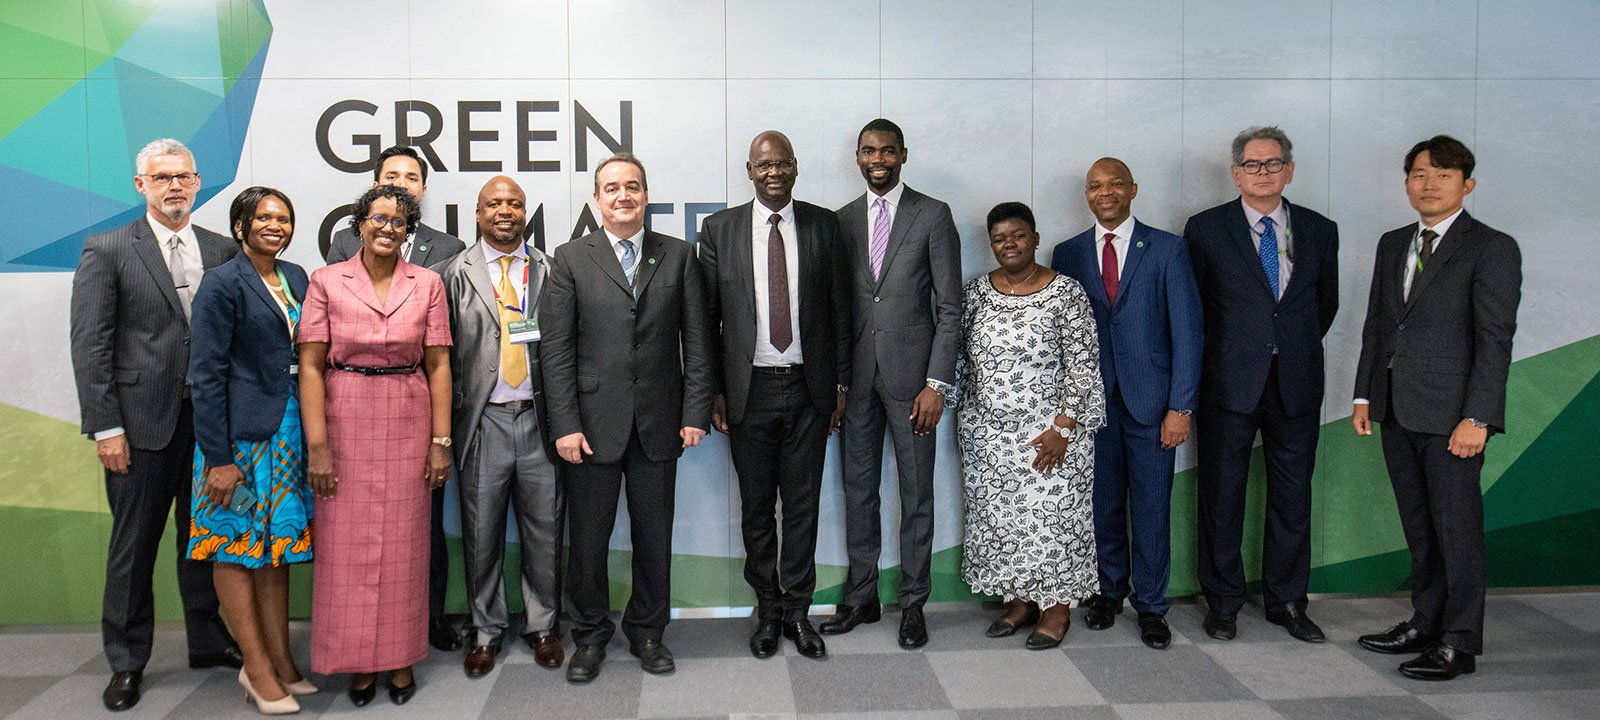 Green Banks and National Climate Change Funds can play an important role in mobilizing finance to support low-carbon, climate-resilient development